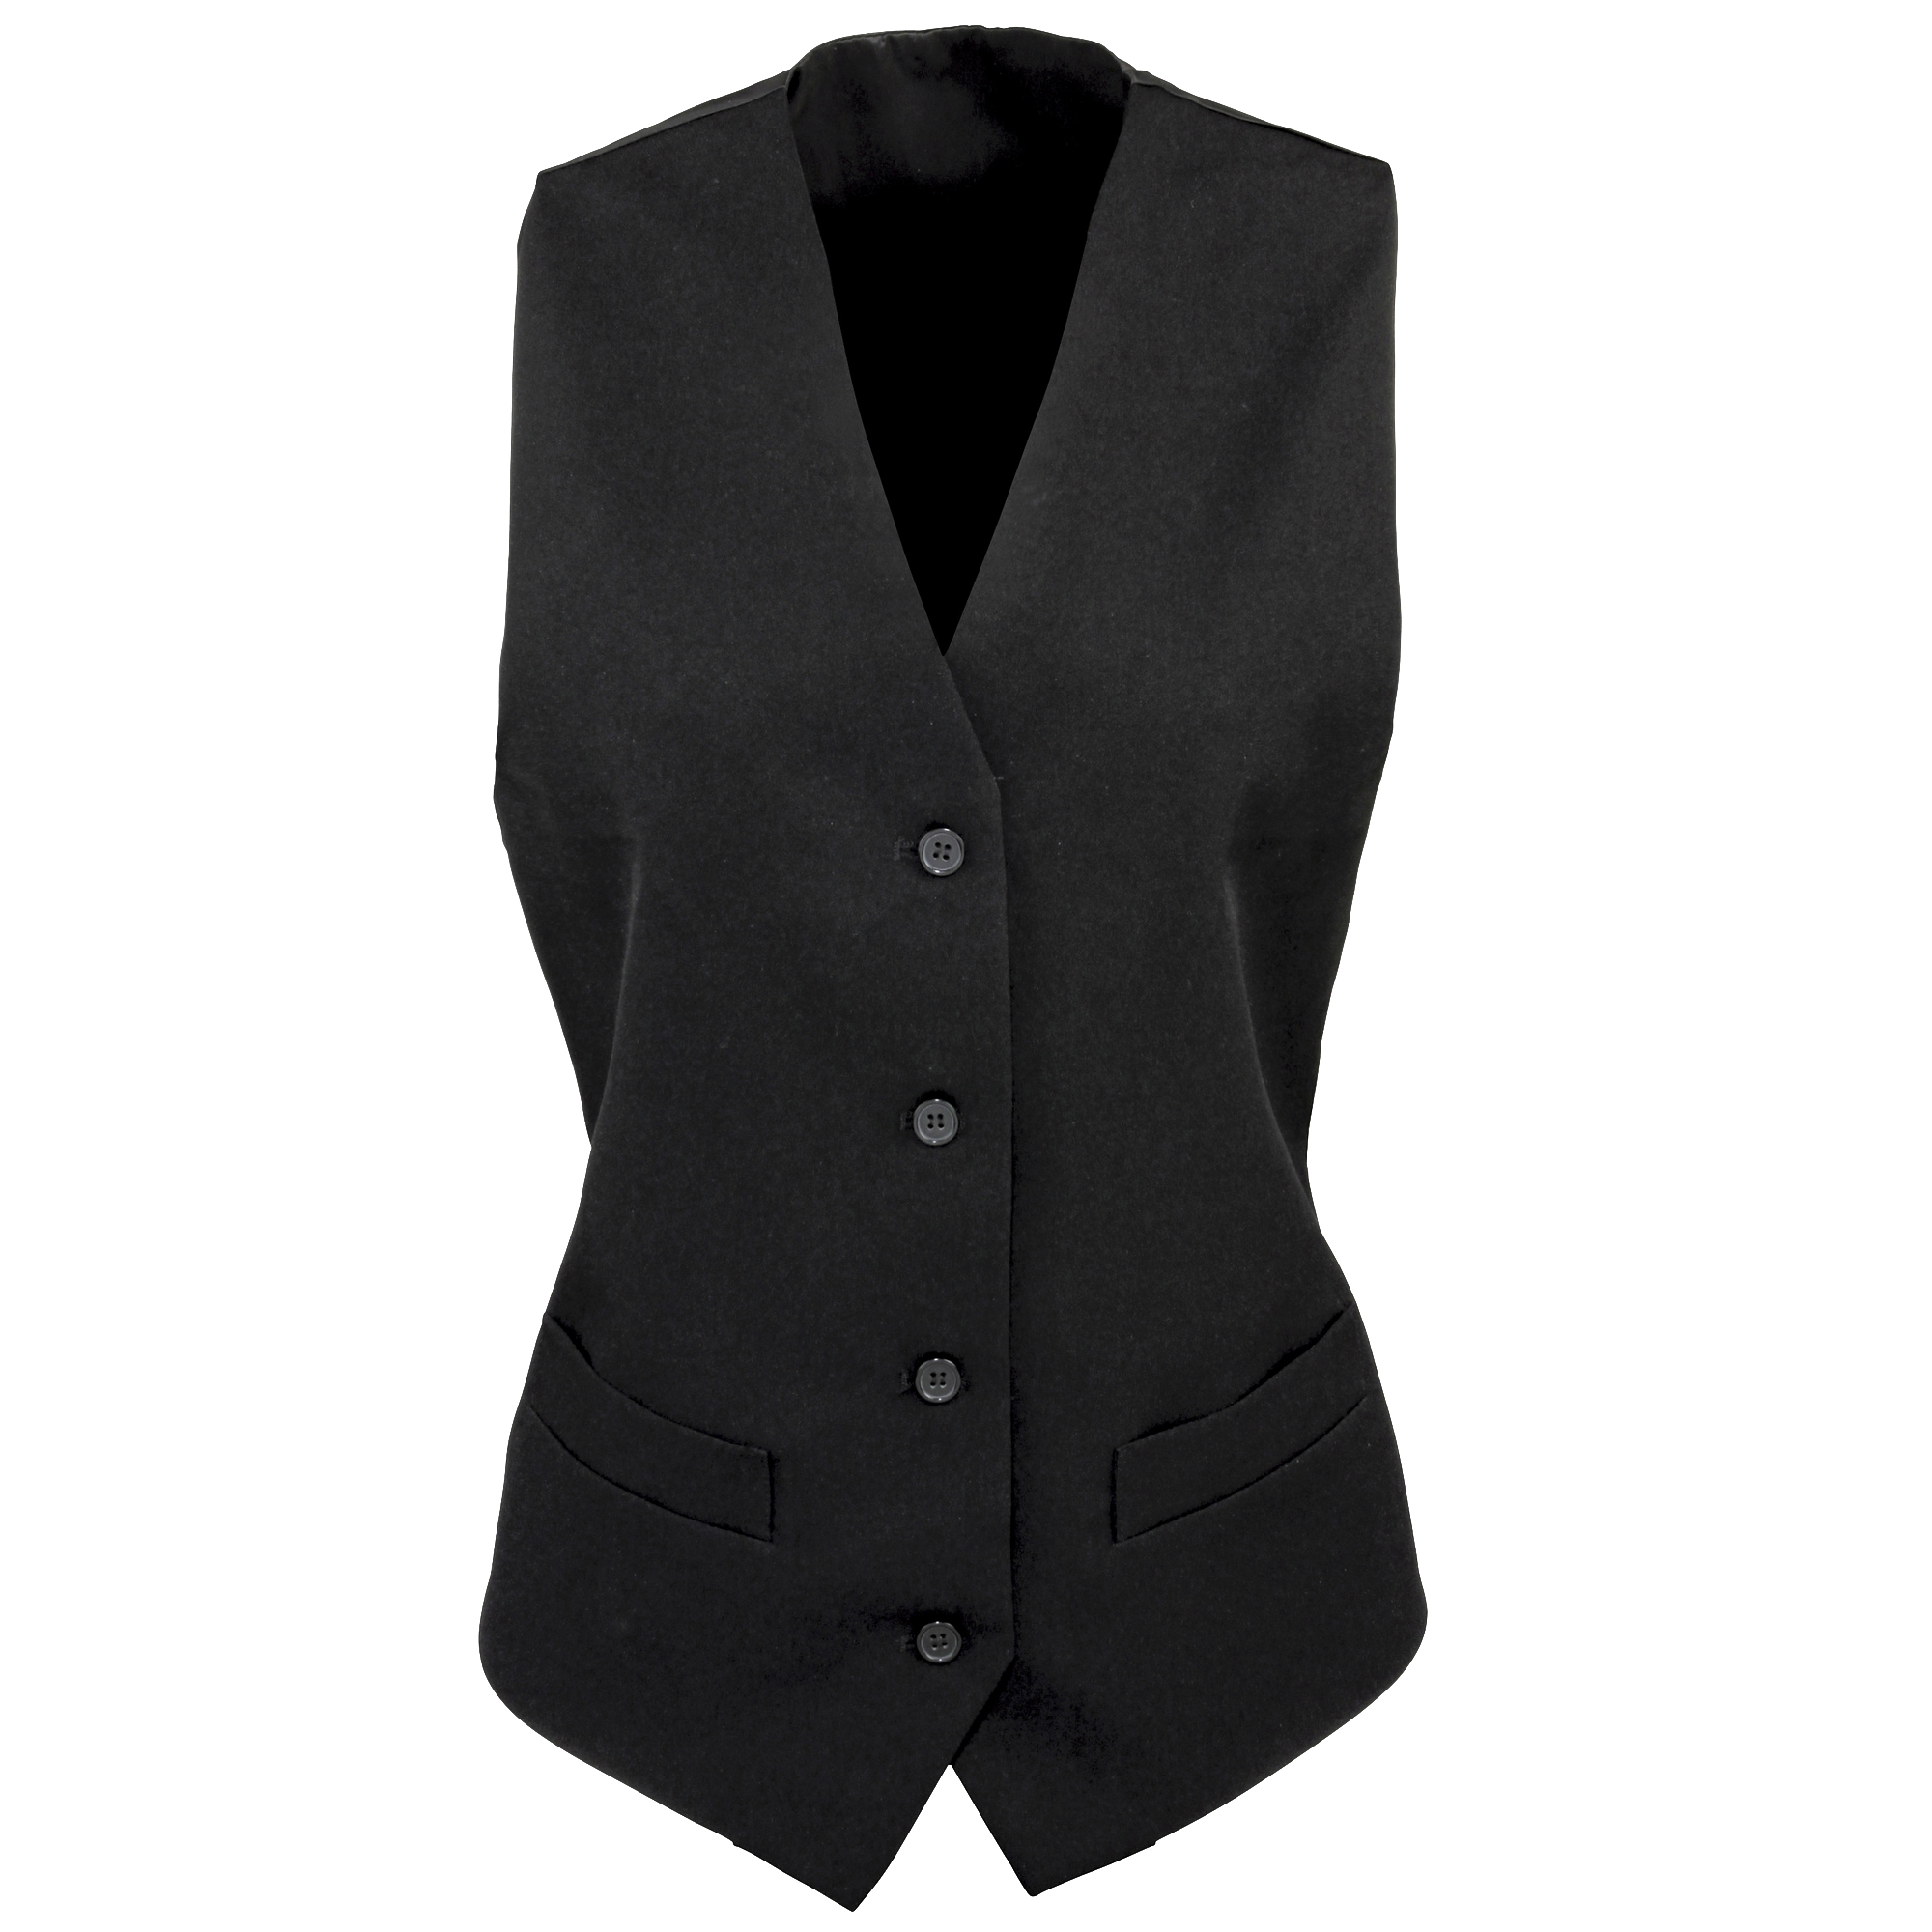 Premier Womens/Ladies Lined Polyester Waistcoat / Bar Wear / Catering (Pack of 2) (M) (Black)